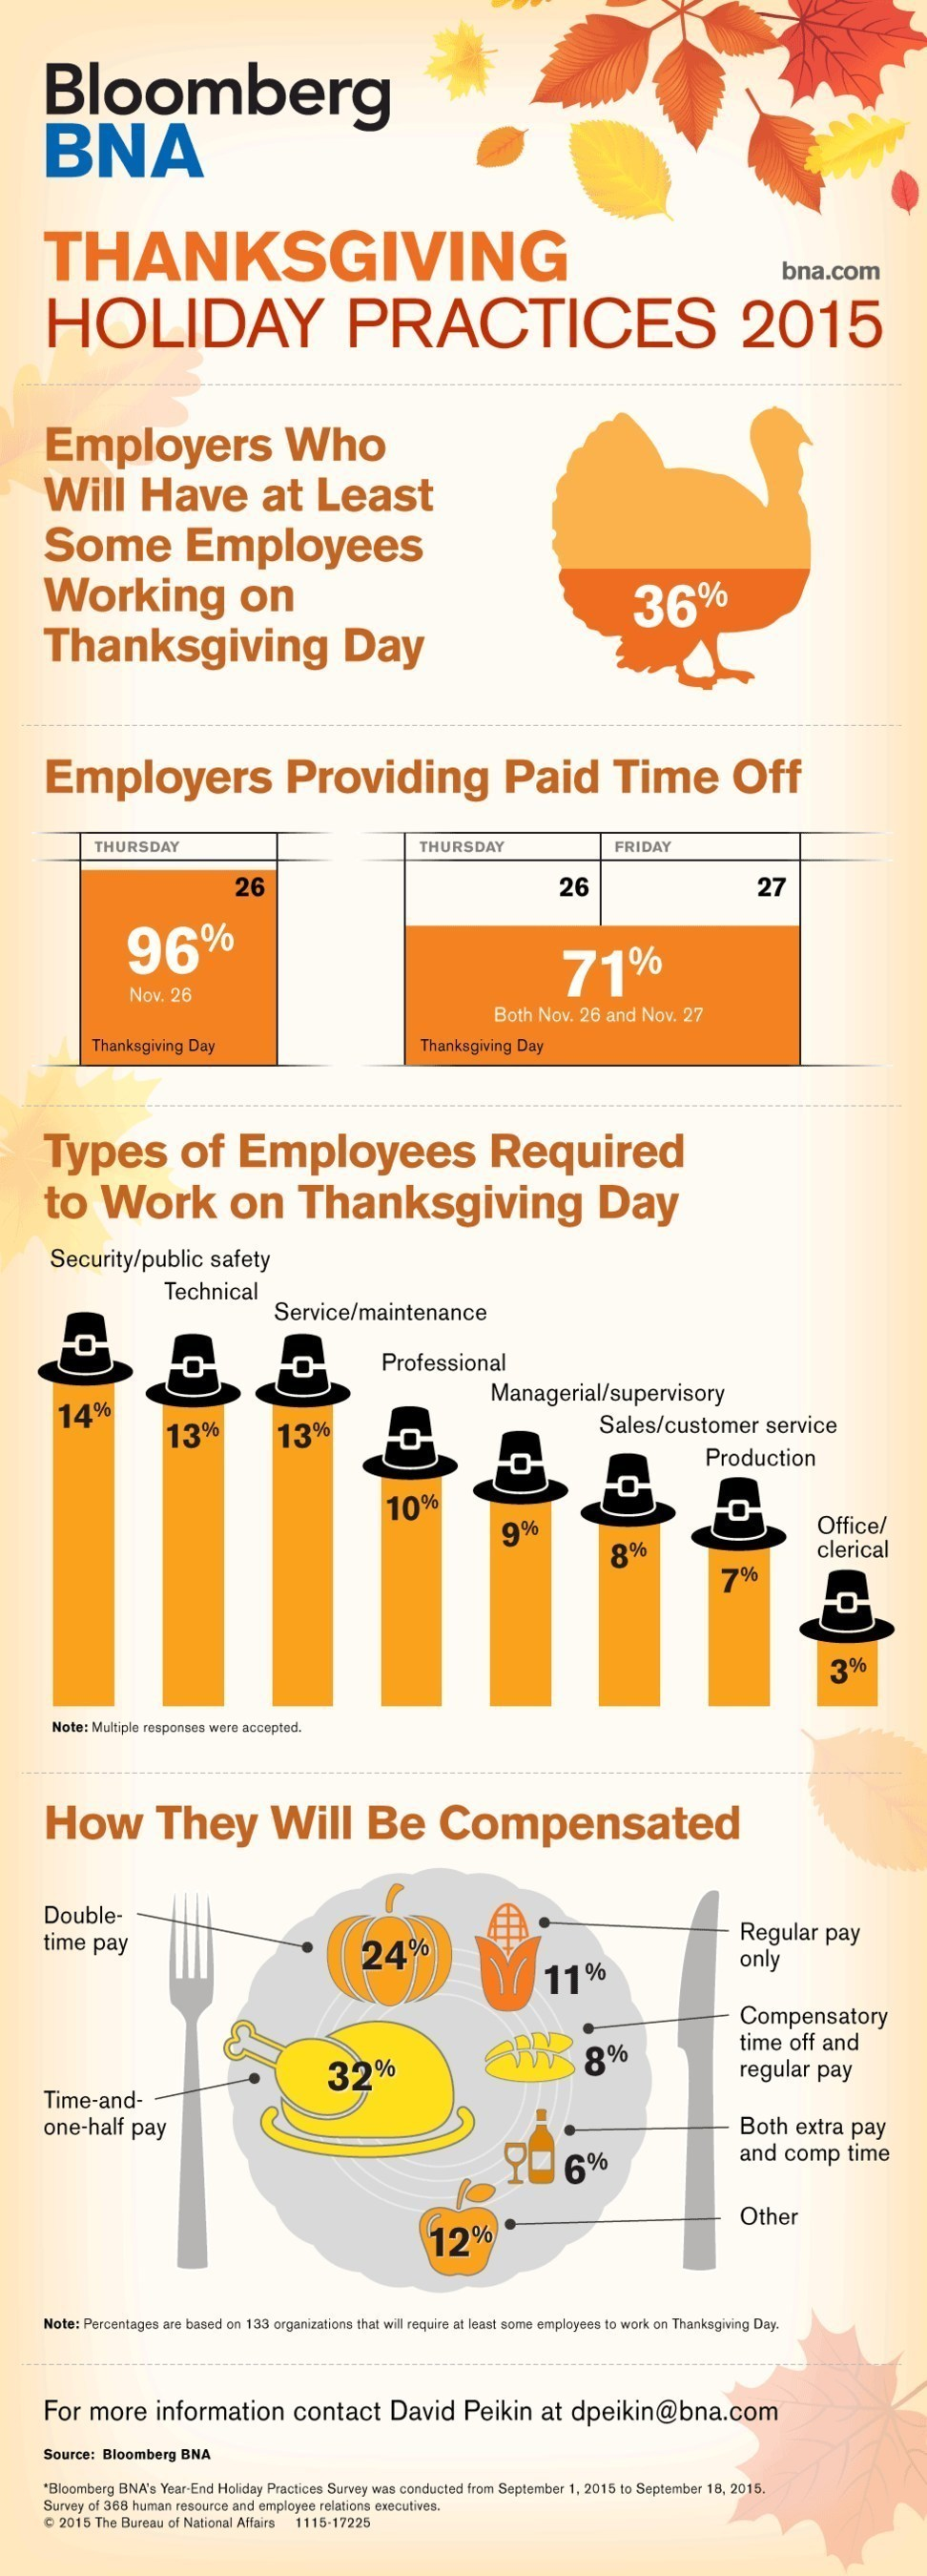 No Holiday for All - 36% of Employers to Require Some to Work on Thanksgiving, According to Annual Bloomberg BNA Nationwide Survey